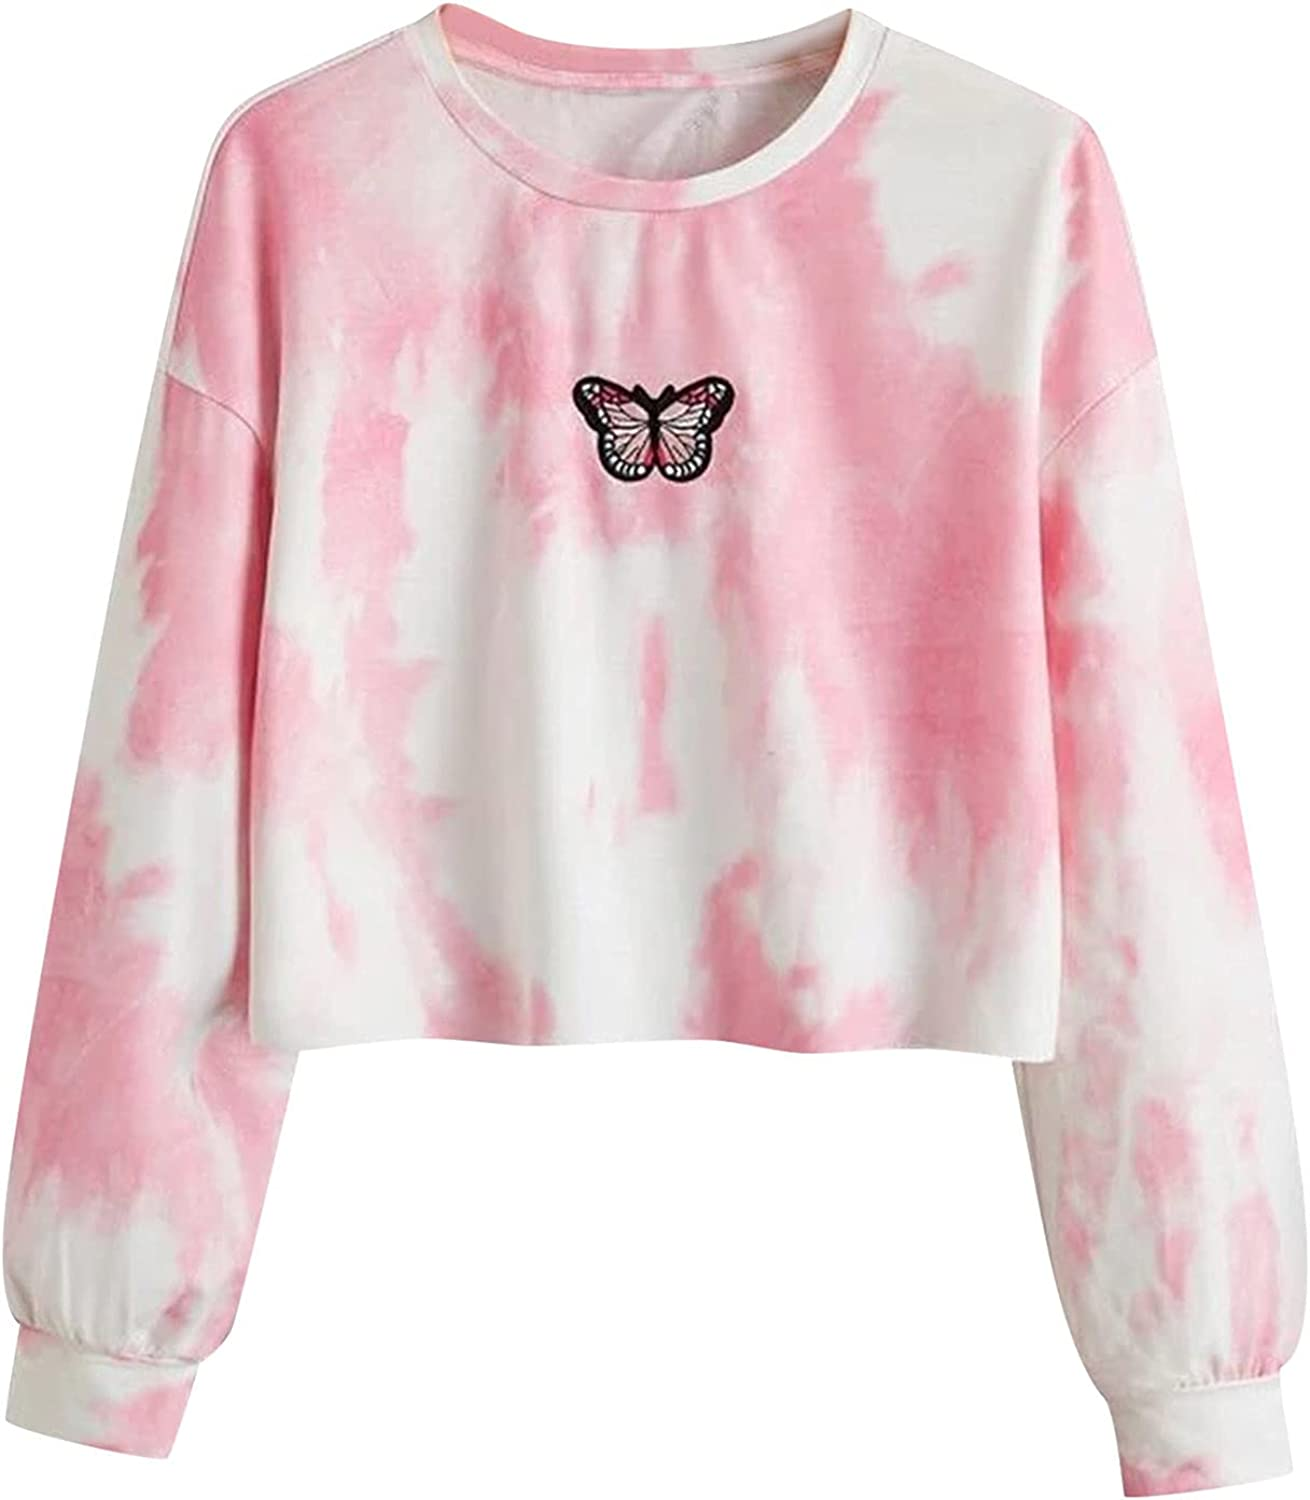 Hoodies for Women's Cropped Tops Funny Tie-dye Printed Casual Long Sleeve Hooded Sweatshirt Pullover Shirt Blouse